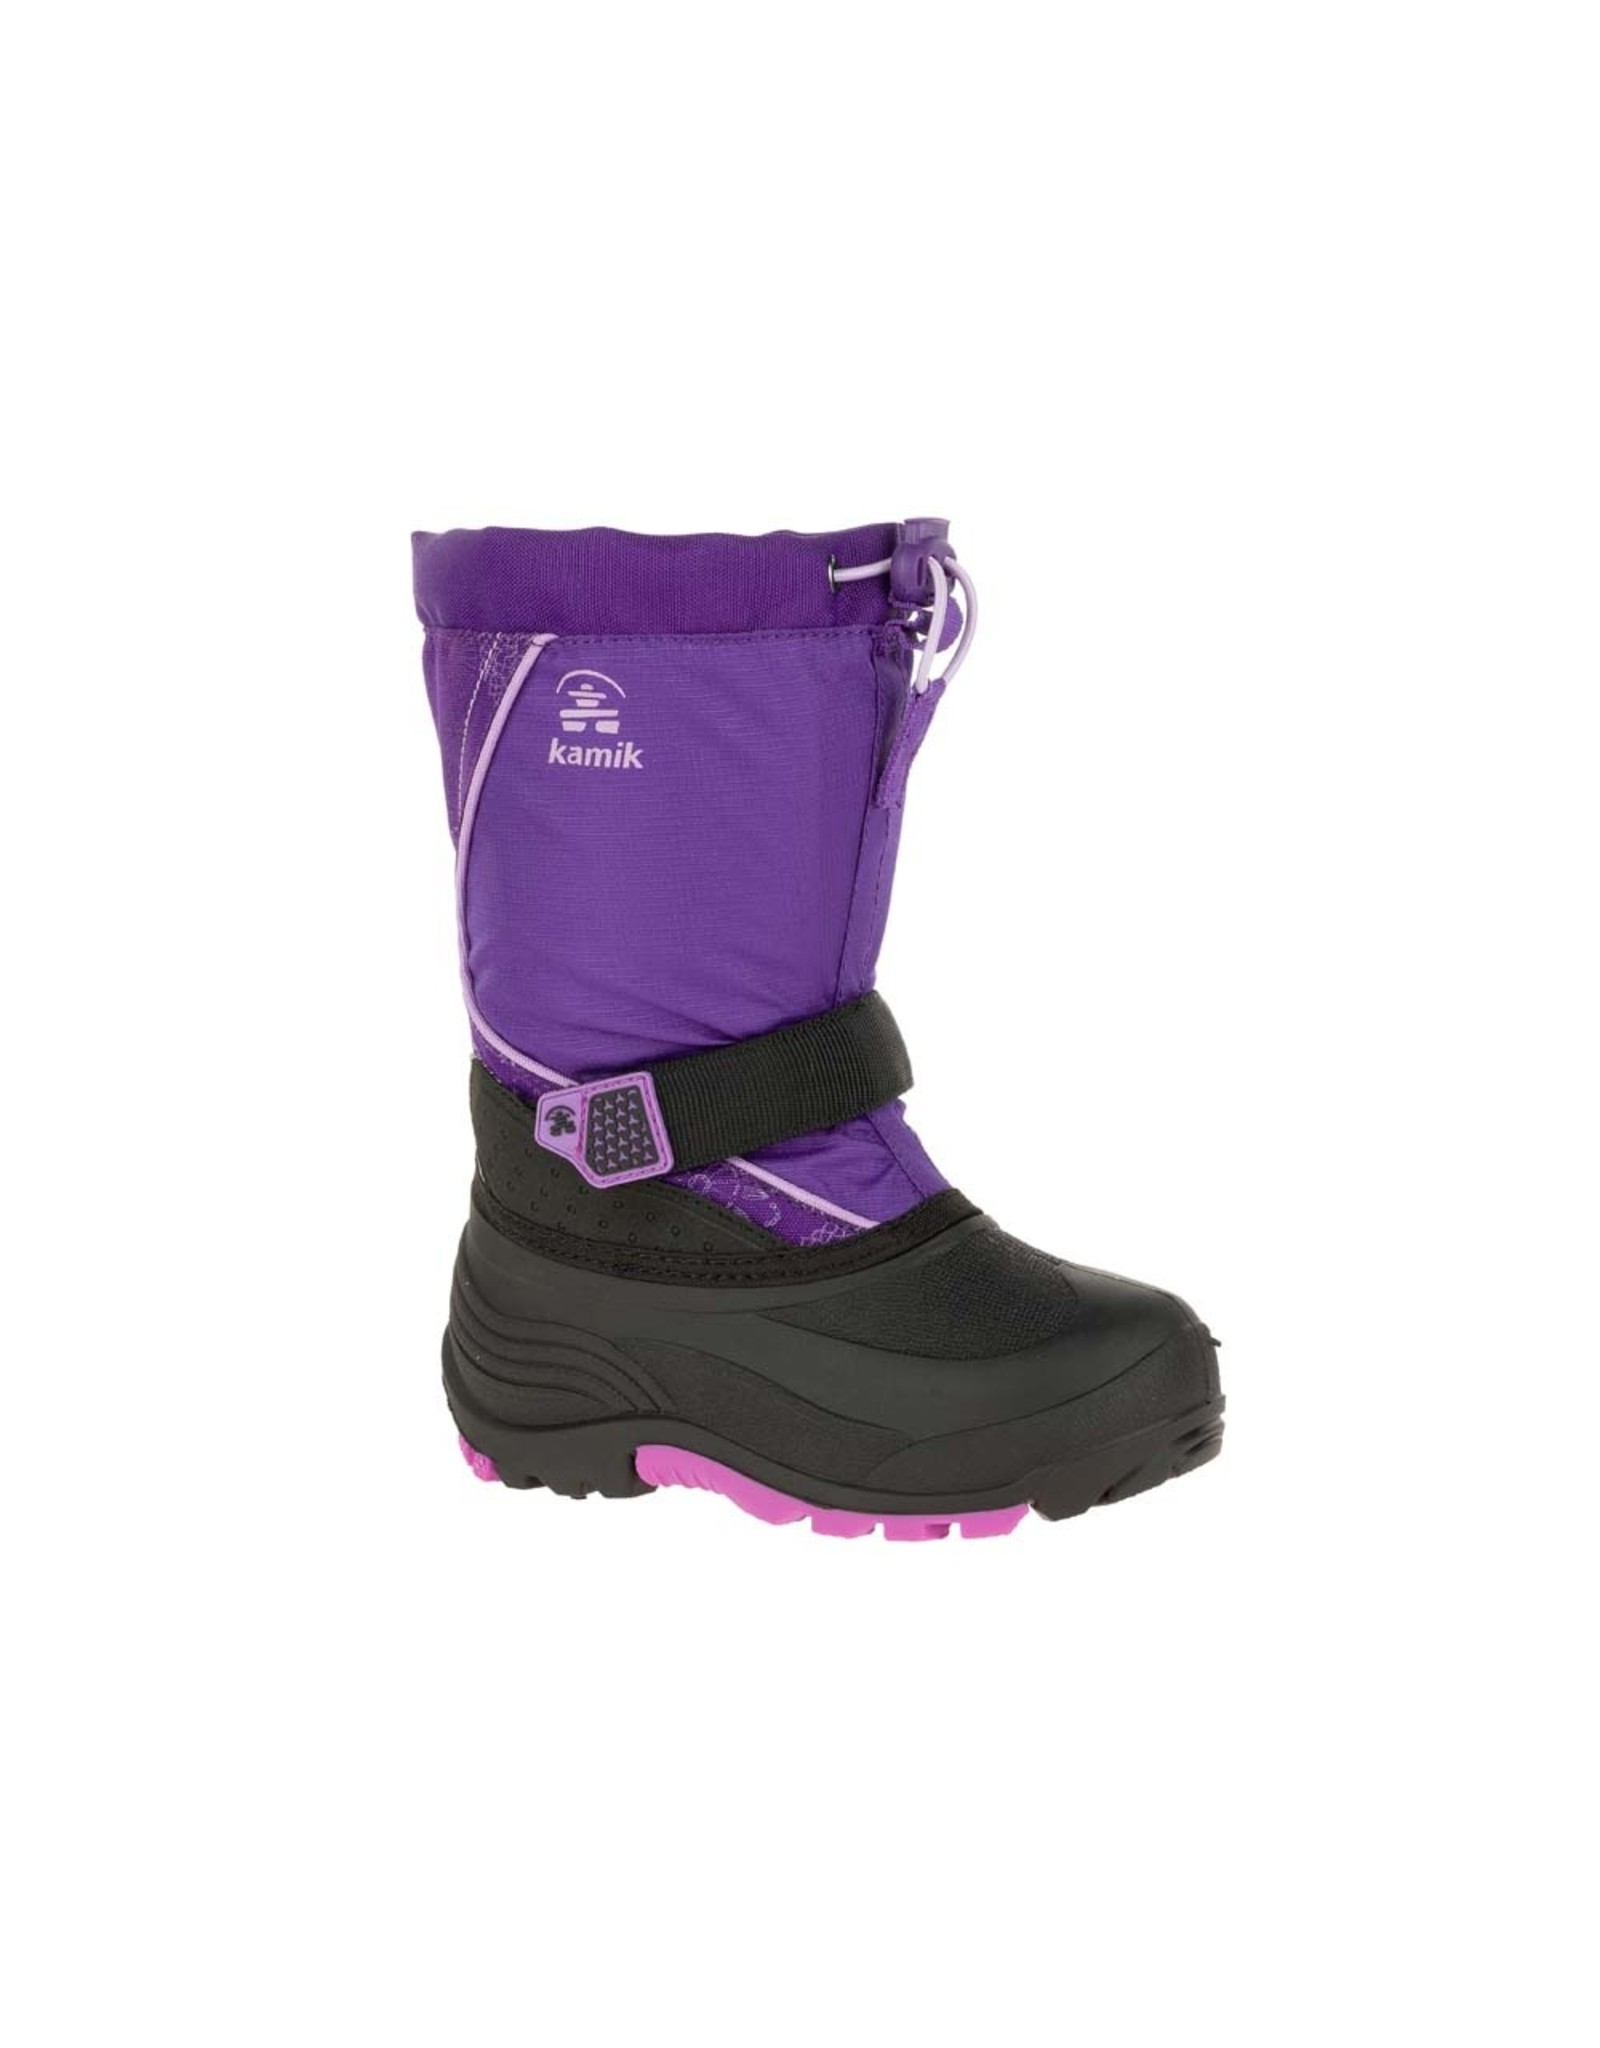 KAMIK KAMIK SNOWFALL SNOW BOOT